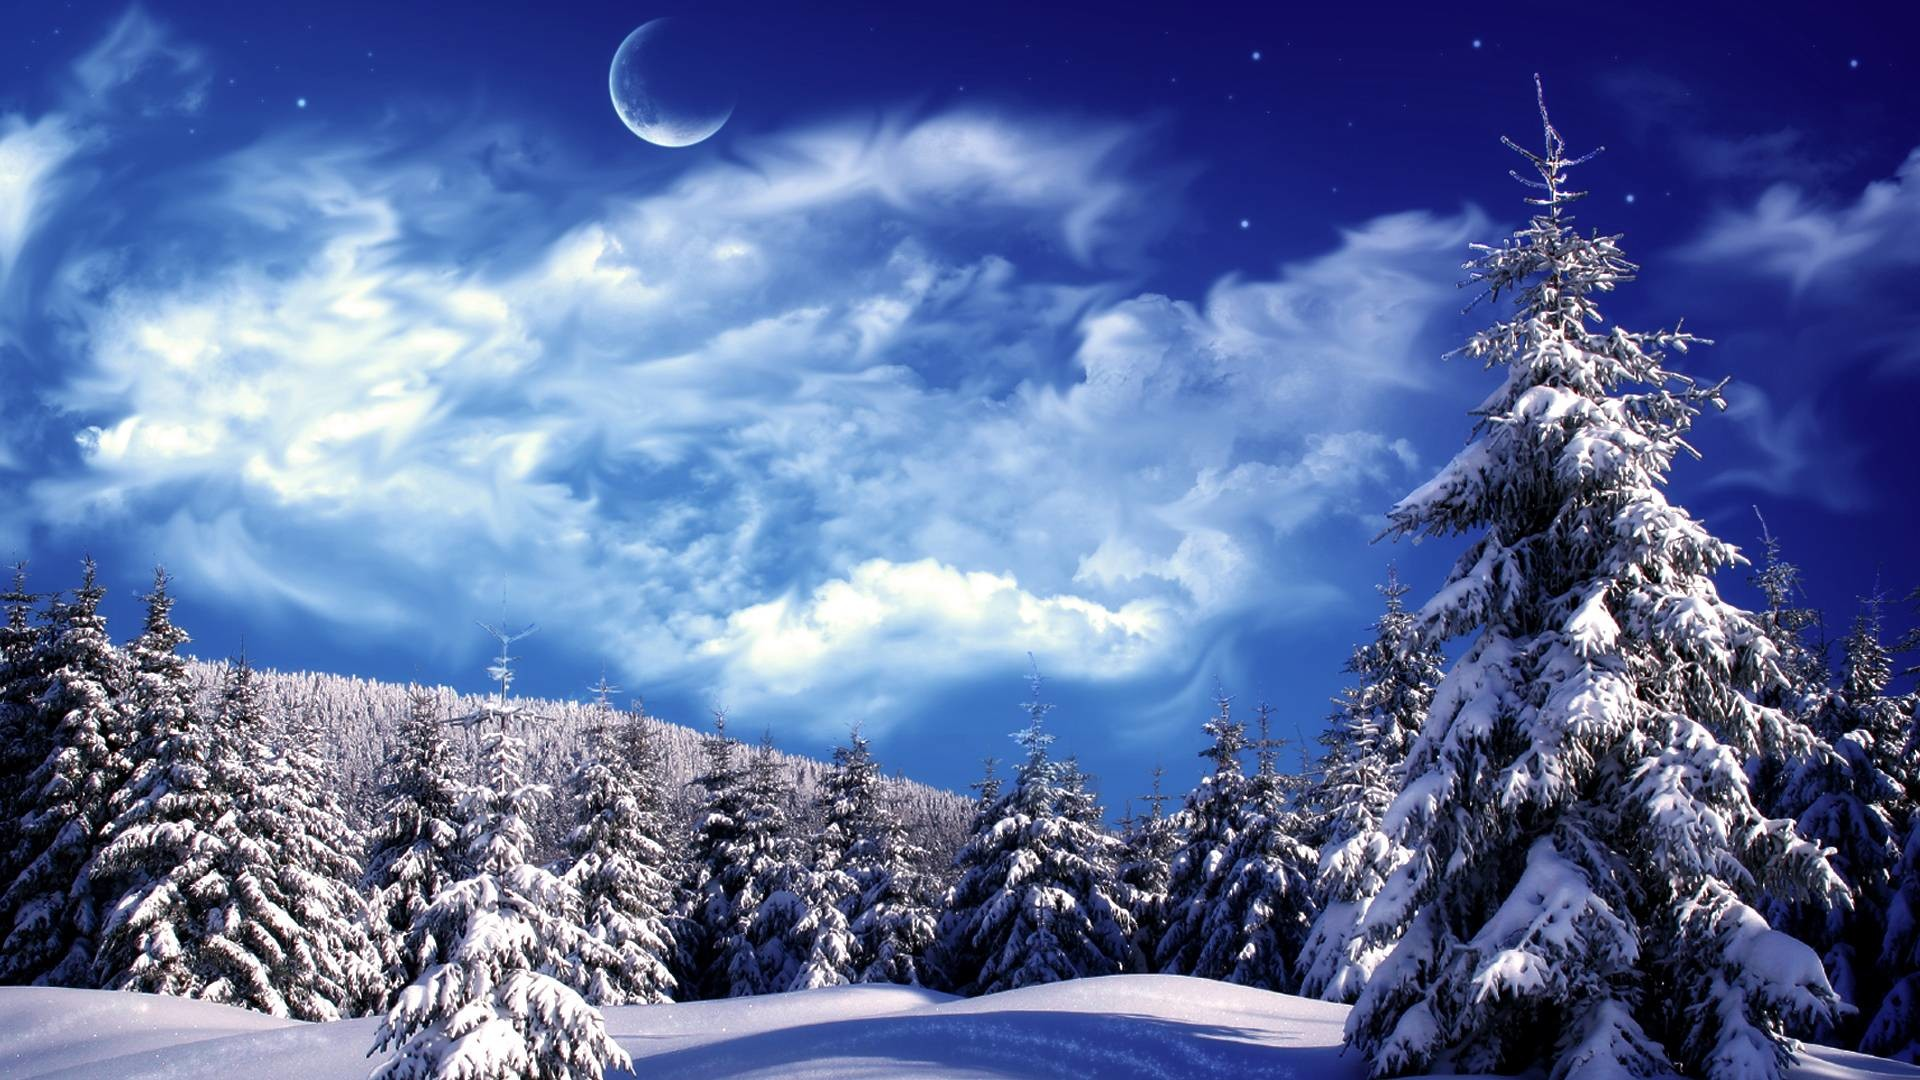 1920x1080 Winter Wonderland Wallpaper Wide or HD | Fantasy Wallpapers